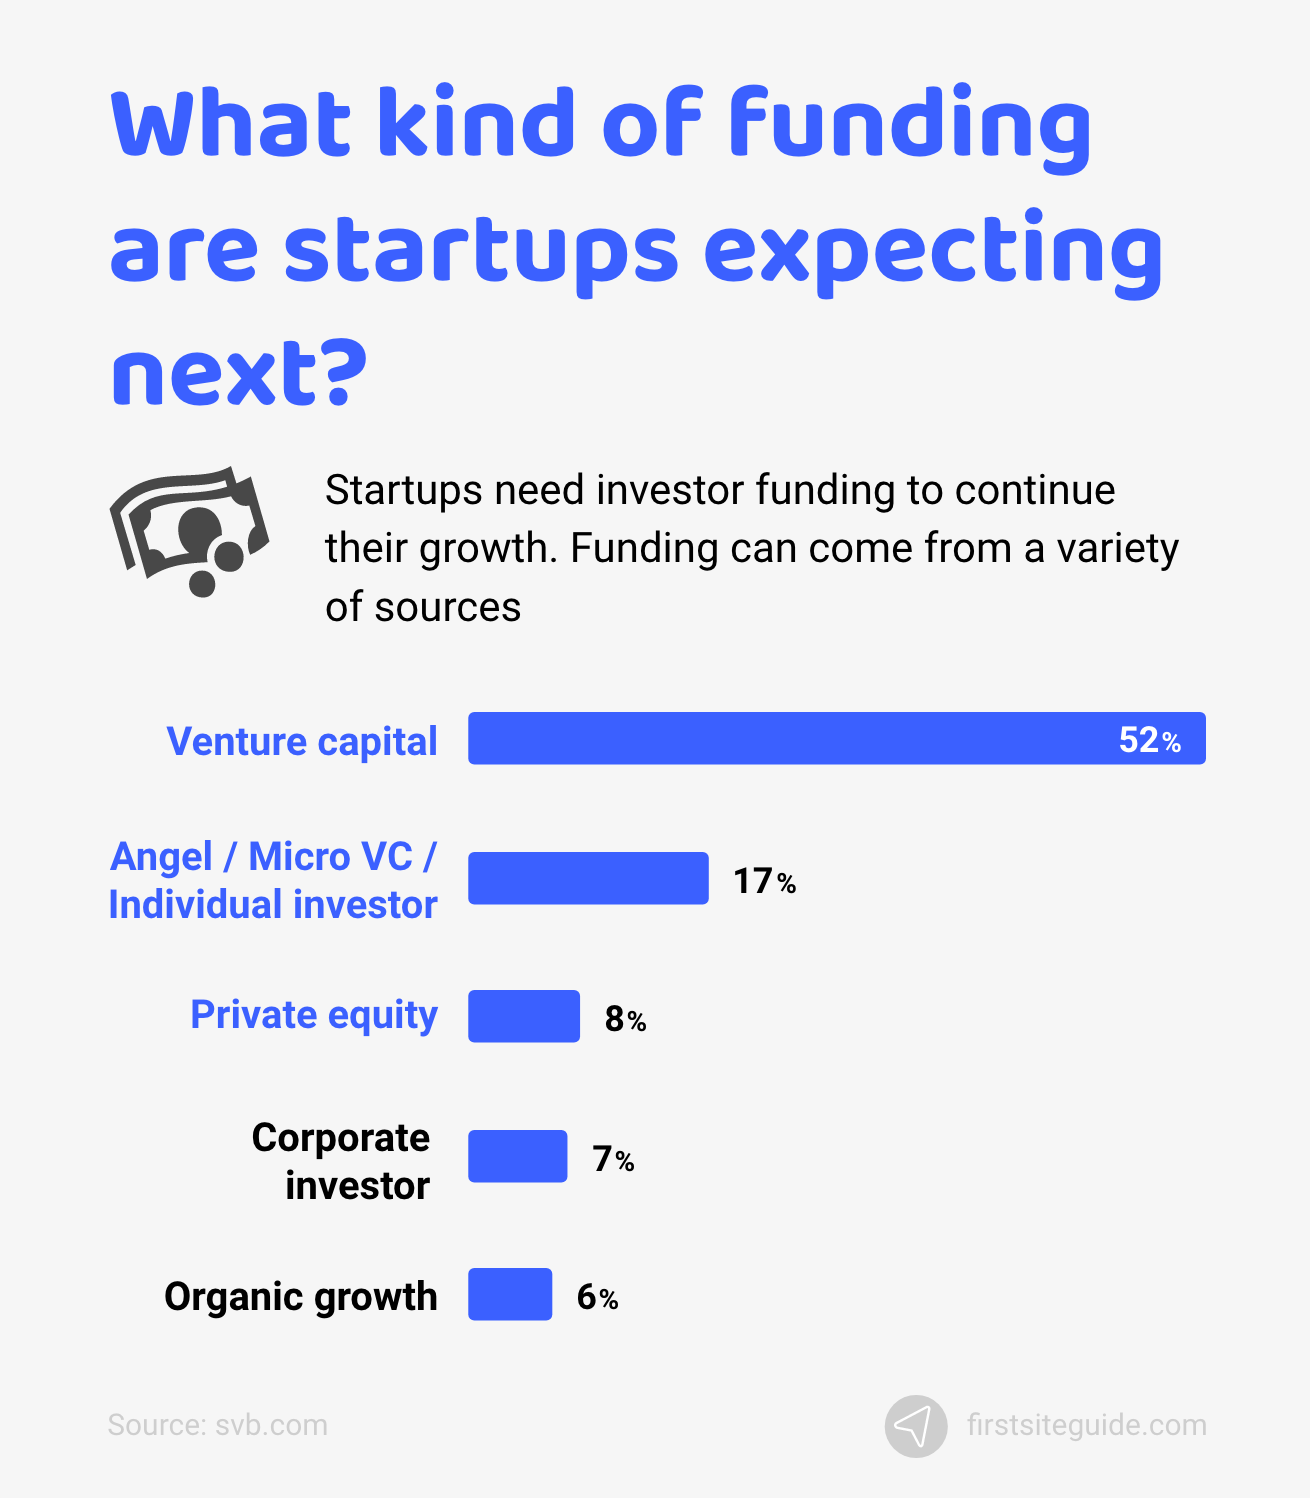 What kind of funding are startups expecting next